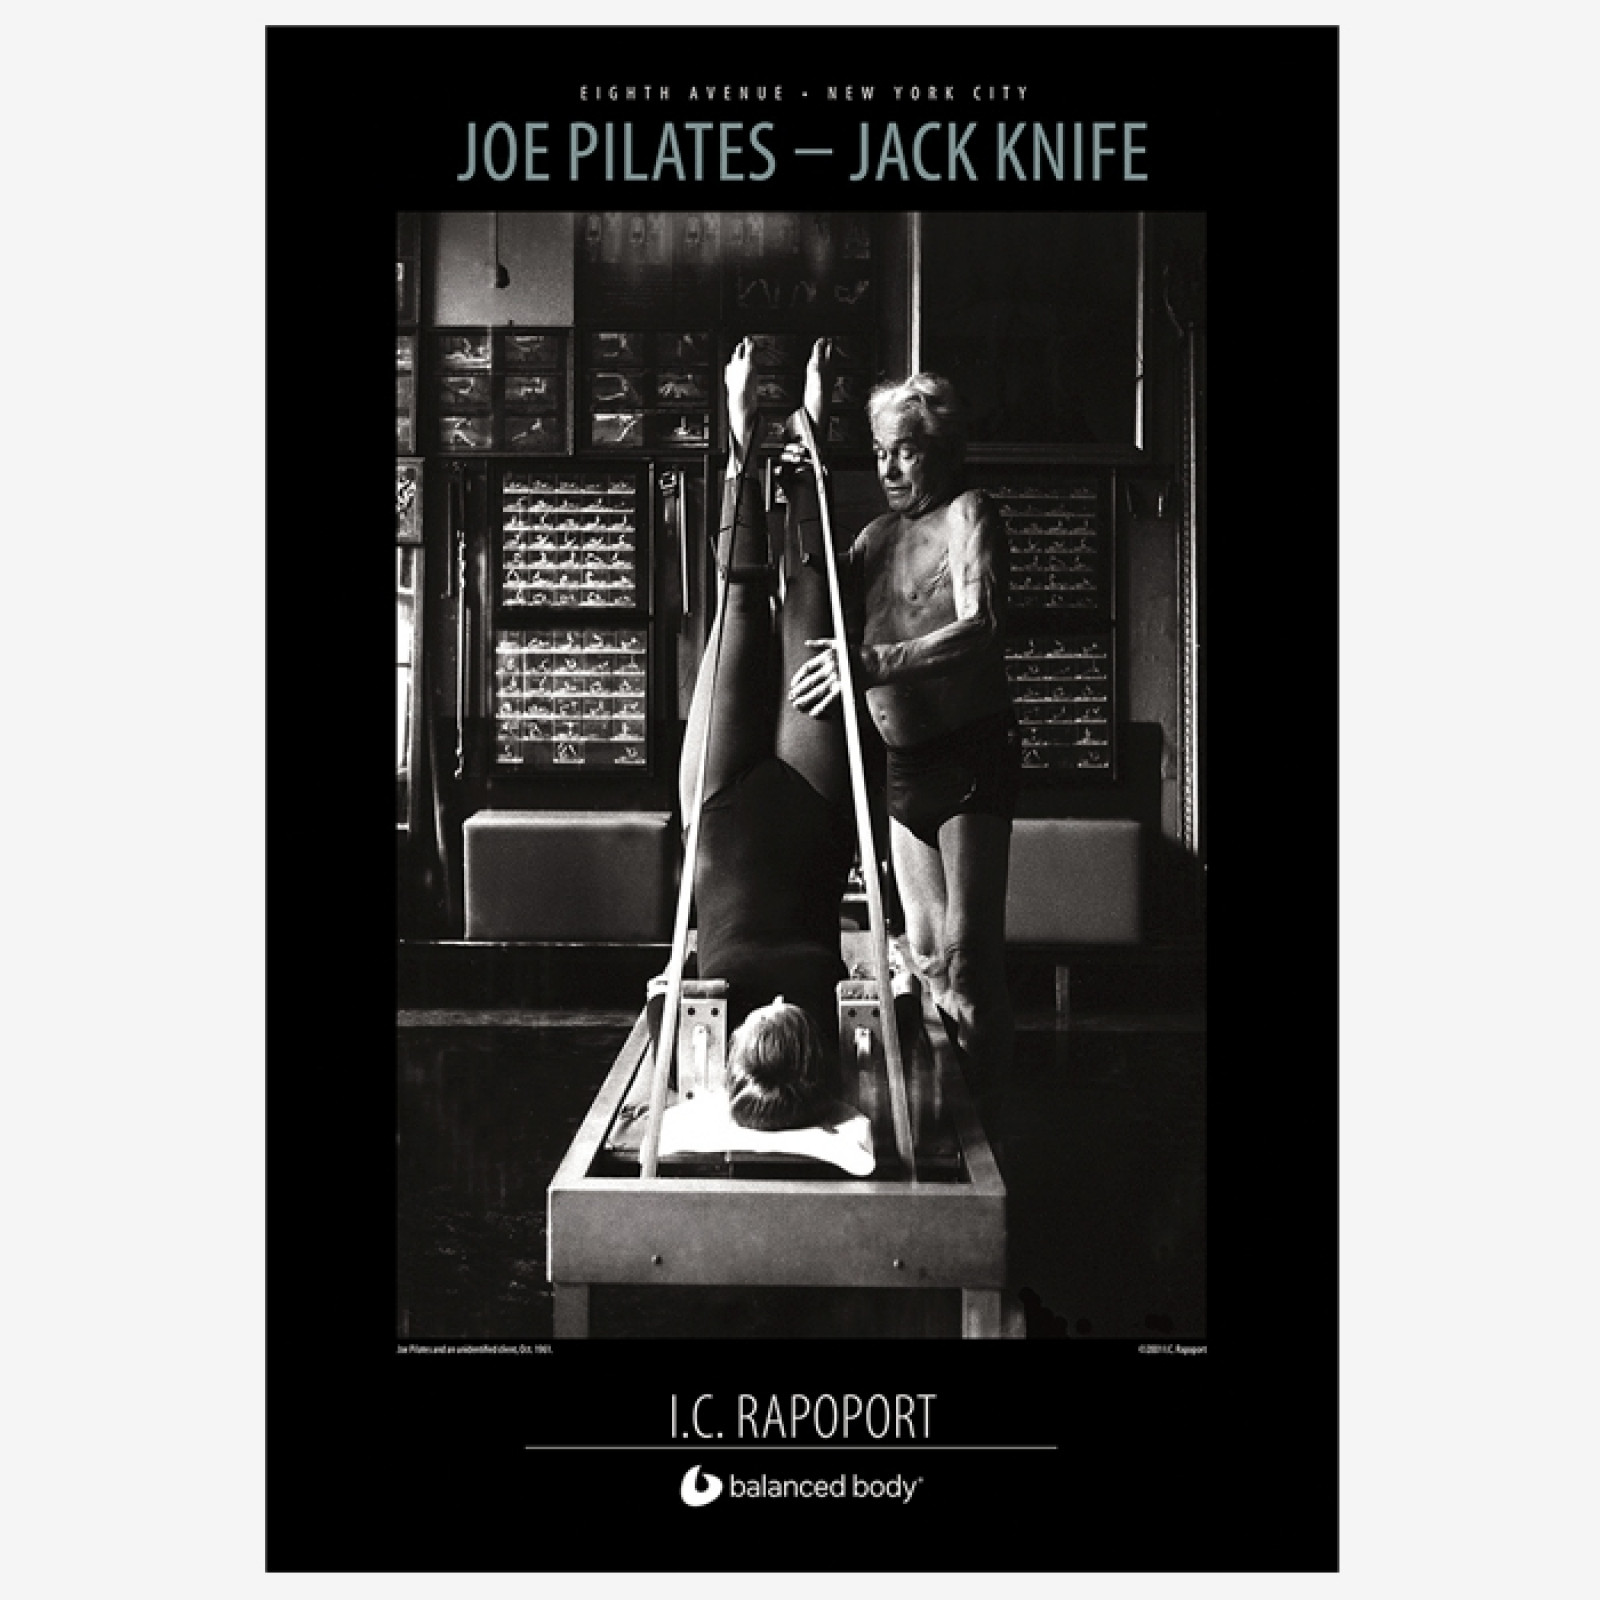 Joe Pilates - Jack Knife Poster